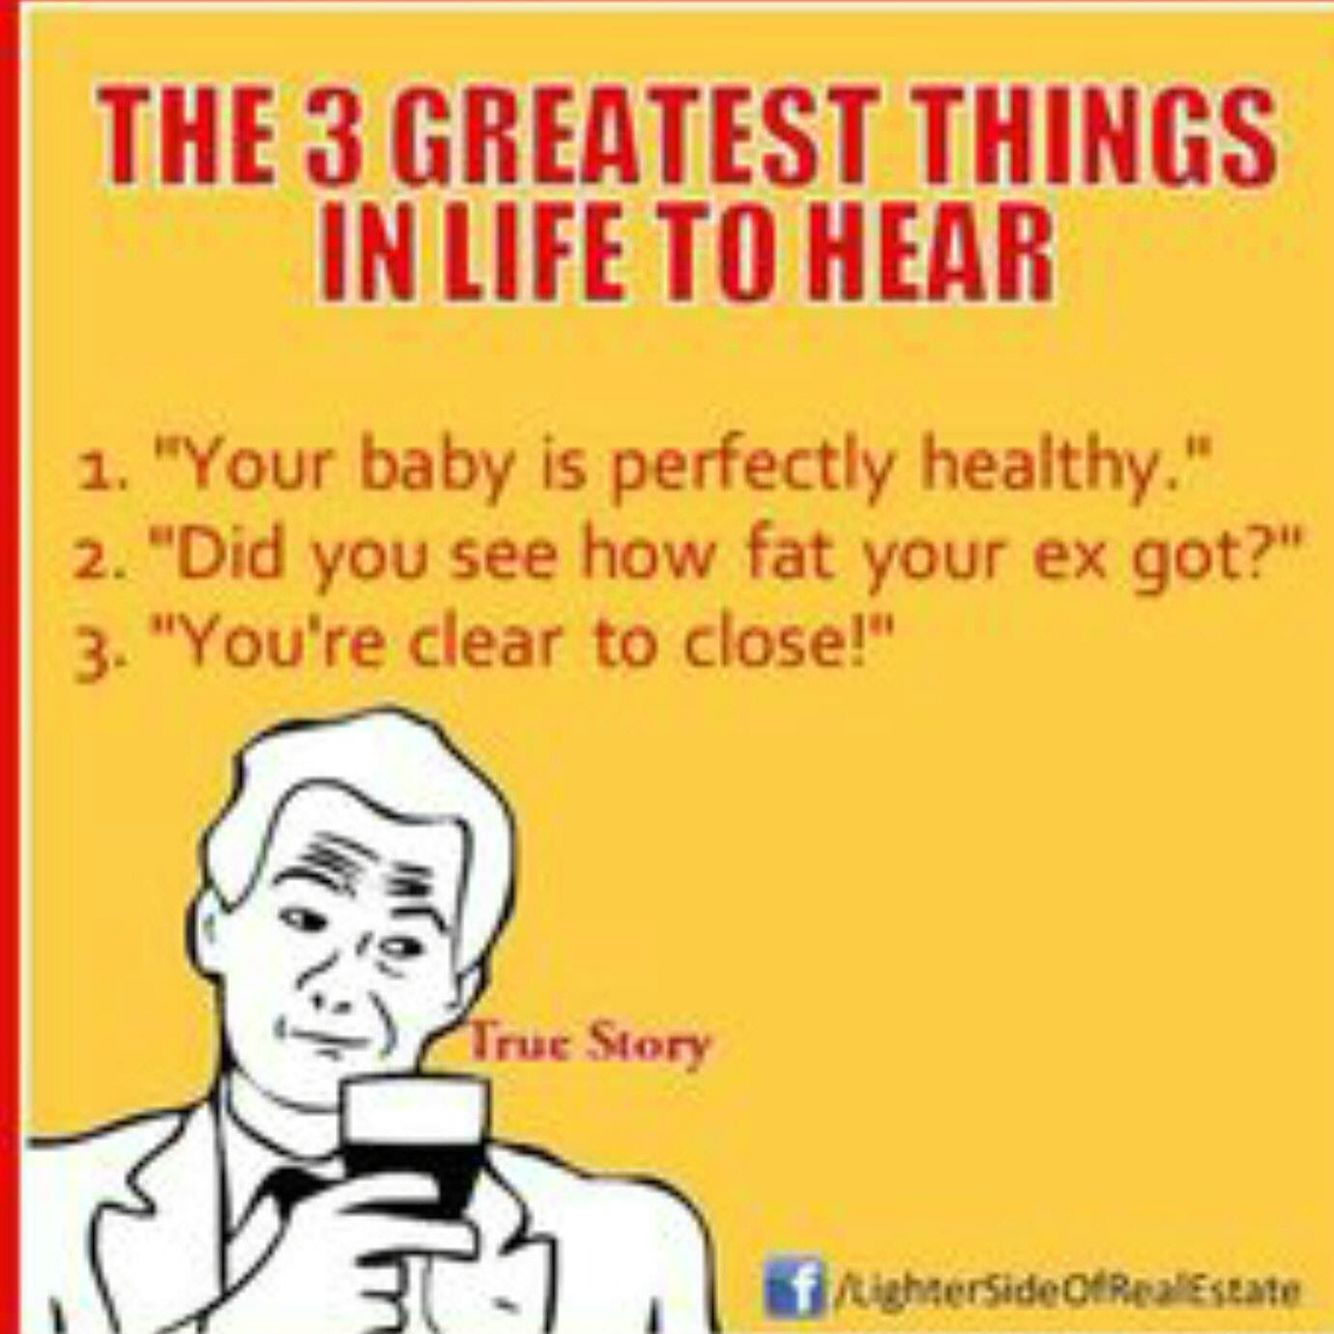 For sure the 3 best things you want to hear!